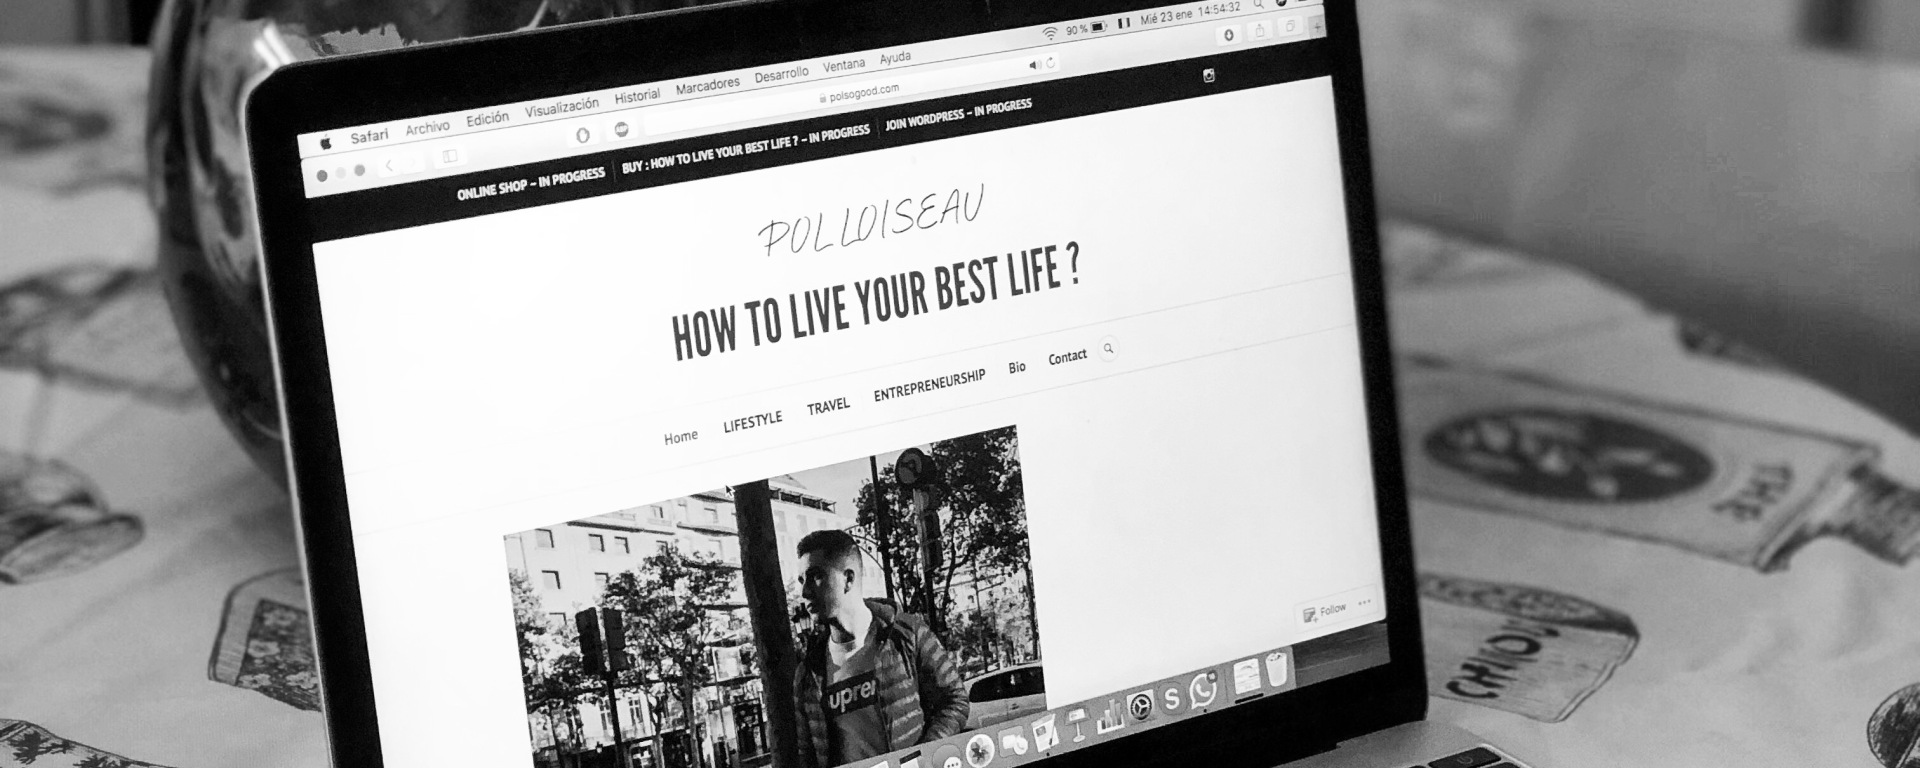 Blog - How To Live Your Best Life